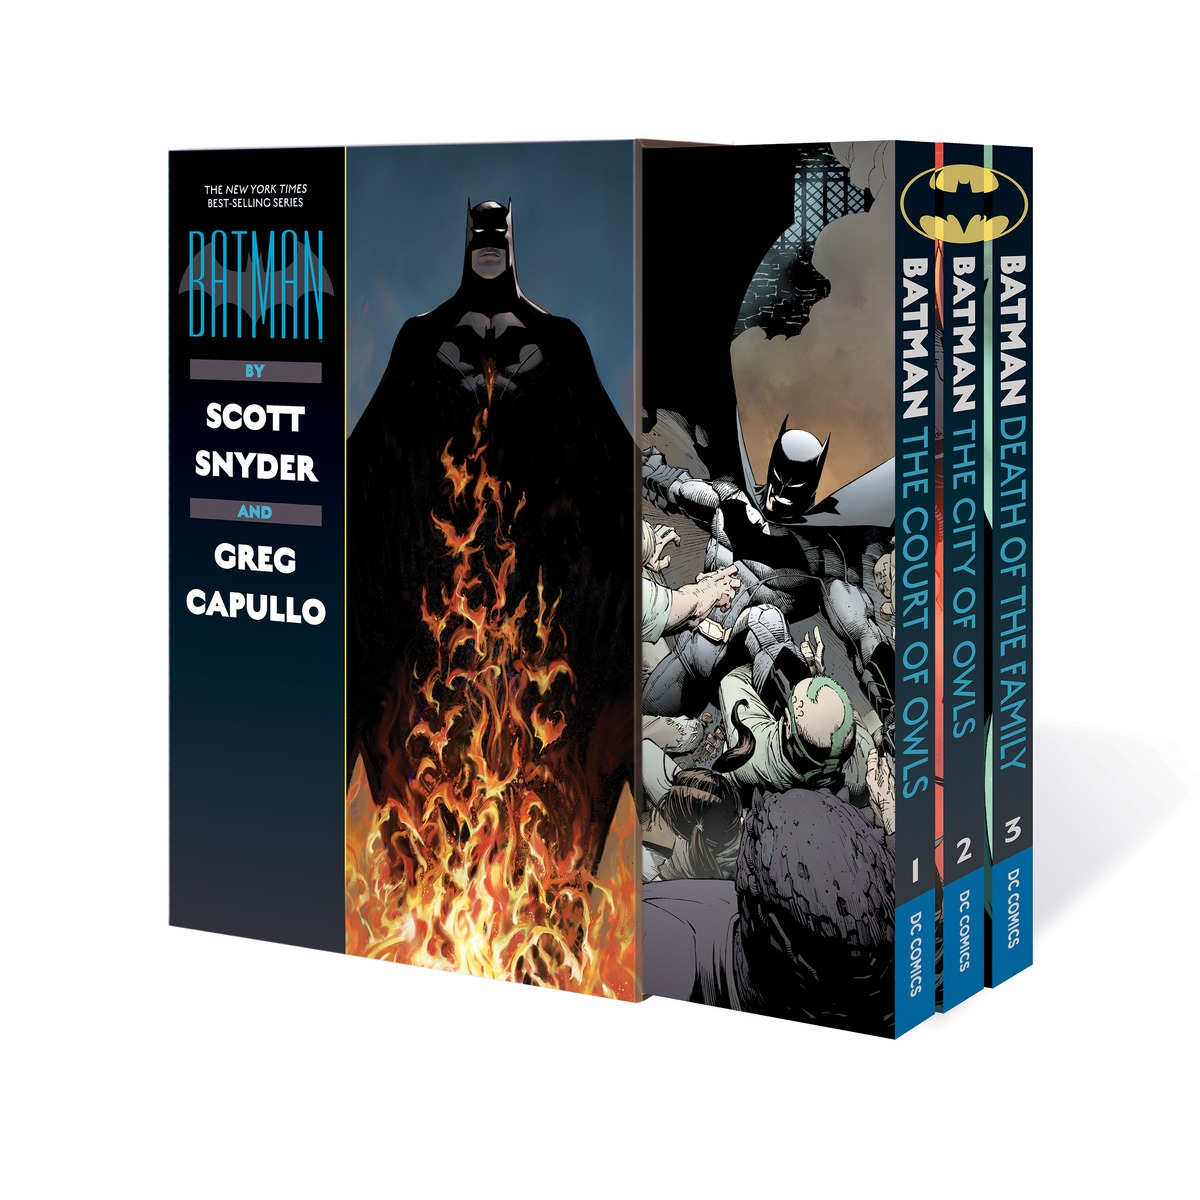 Batman by Scott Snyder & Greg Capullo Box Set rod serling twilight zone radio dramas vol 1 10 cd set